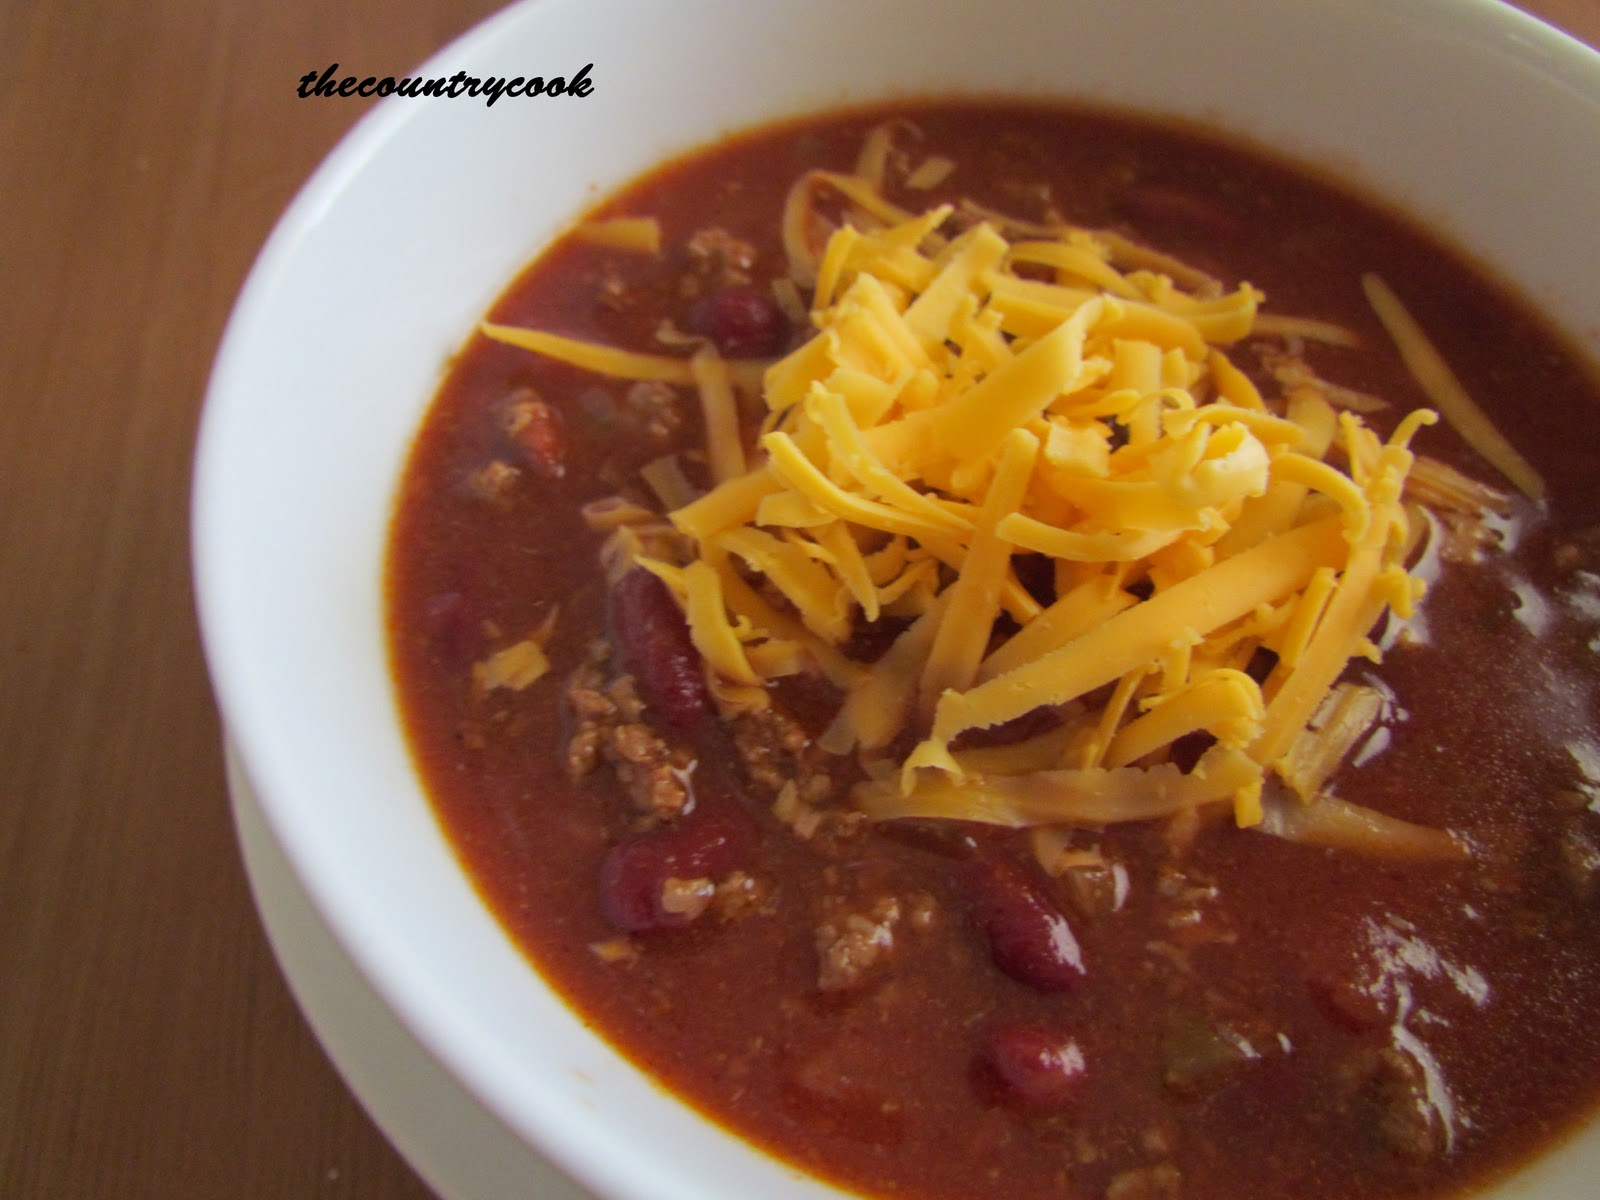 The Country Cook: Crock Pot Chili & Sweet Cornbread